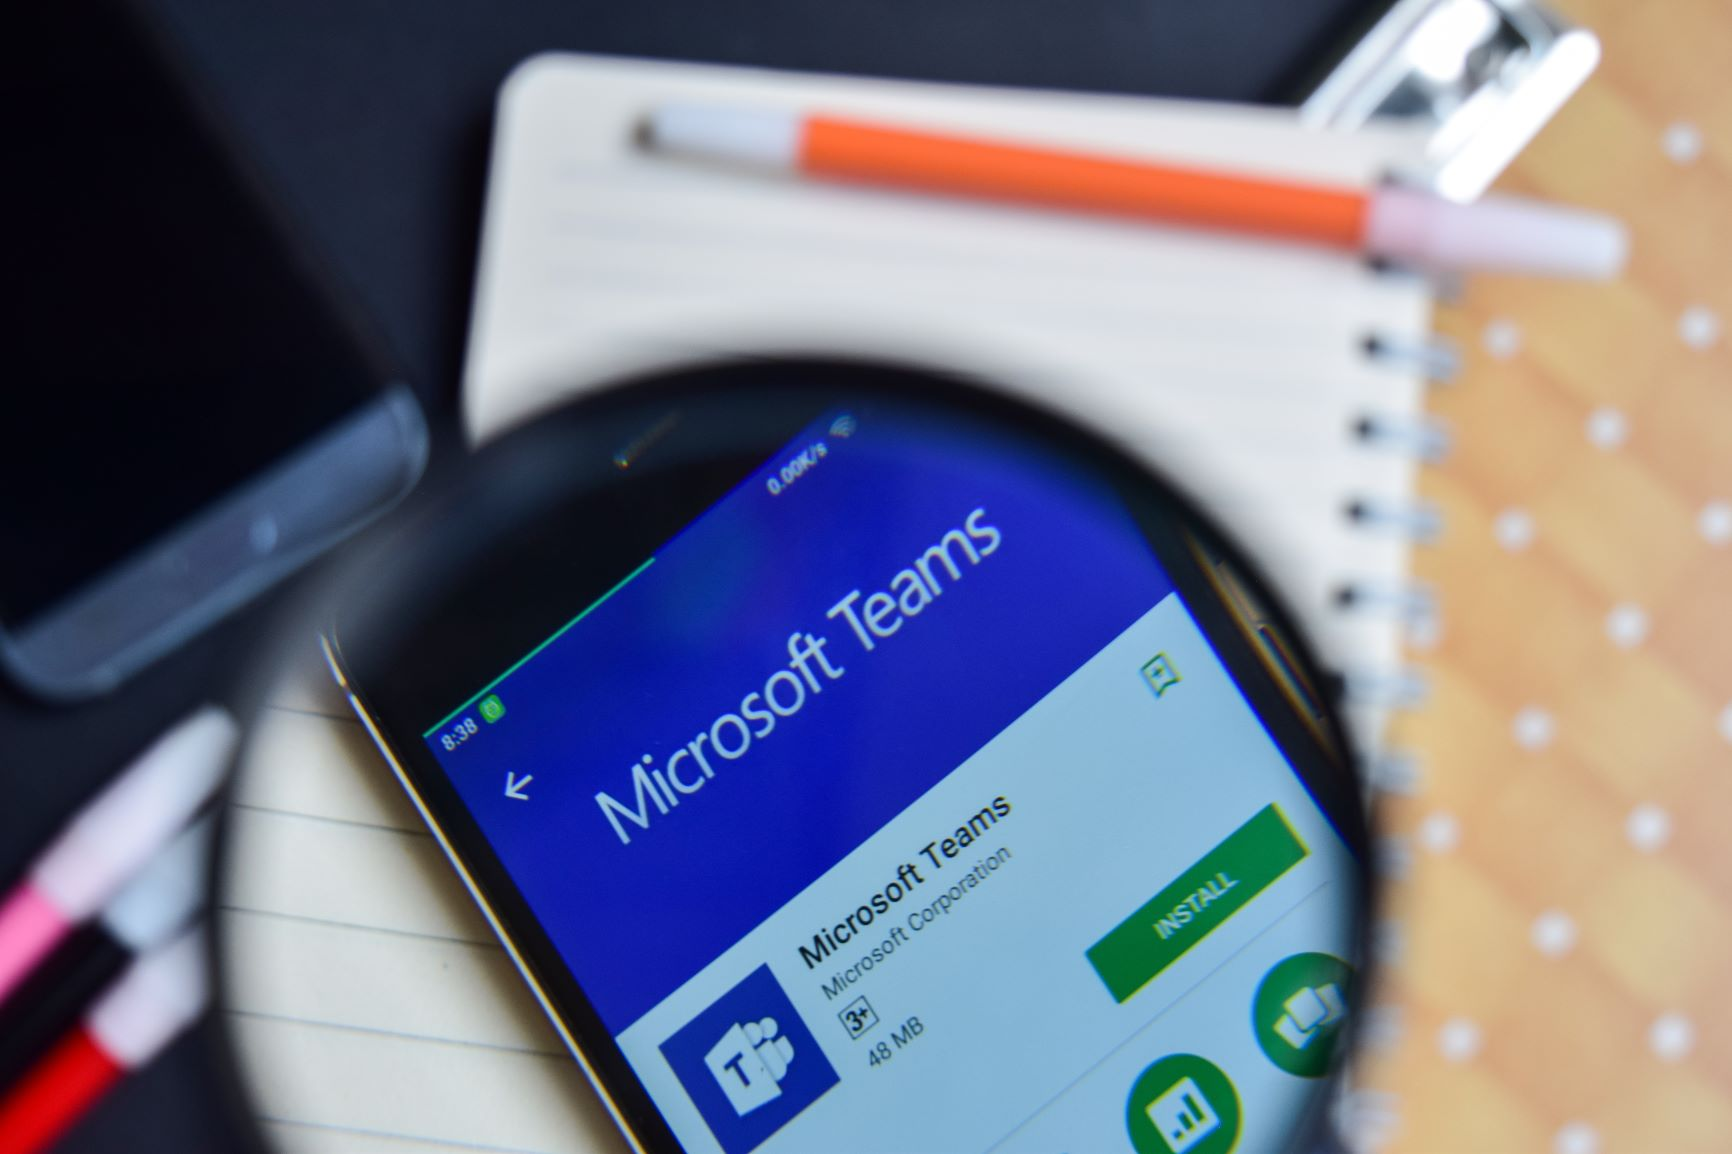 Voice of Microsoft Teams